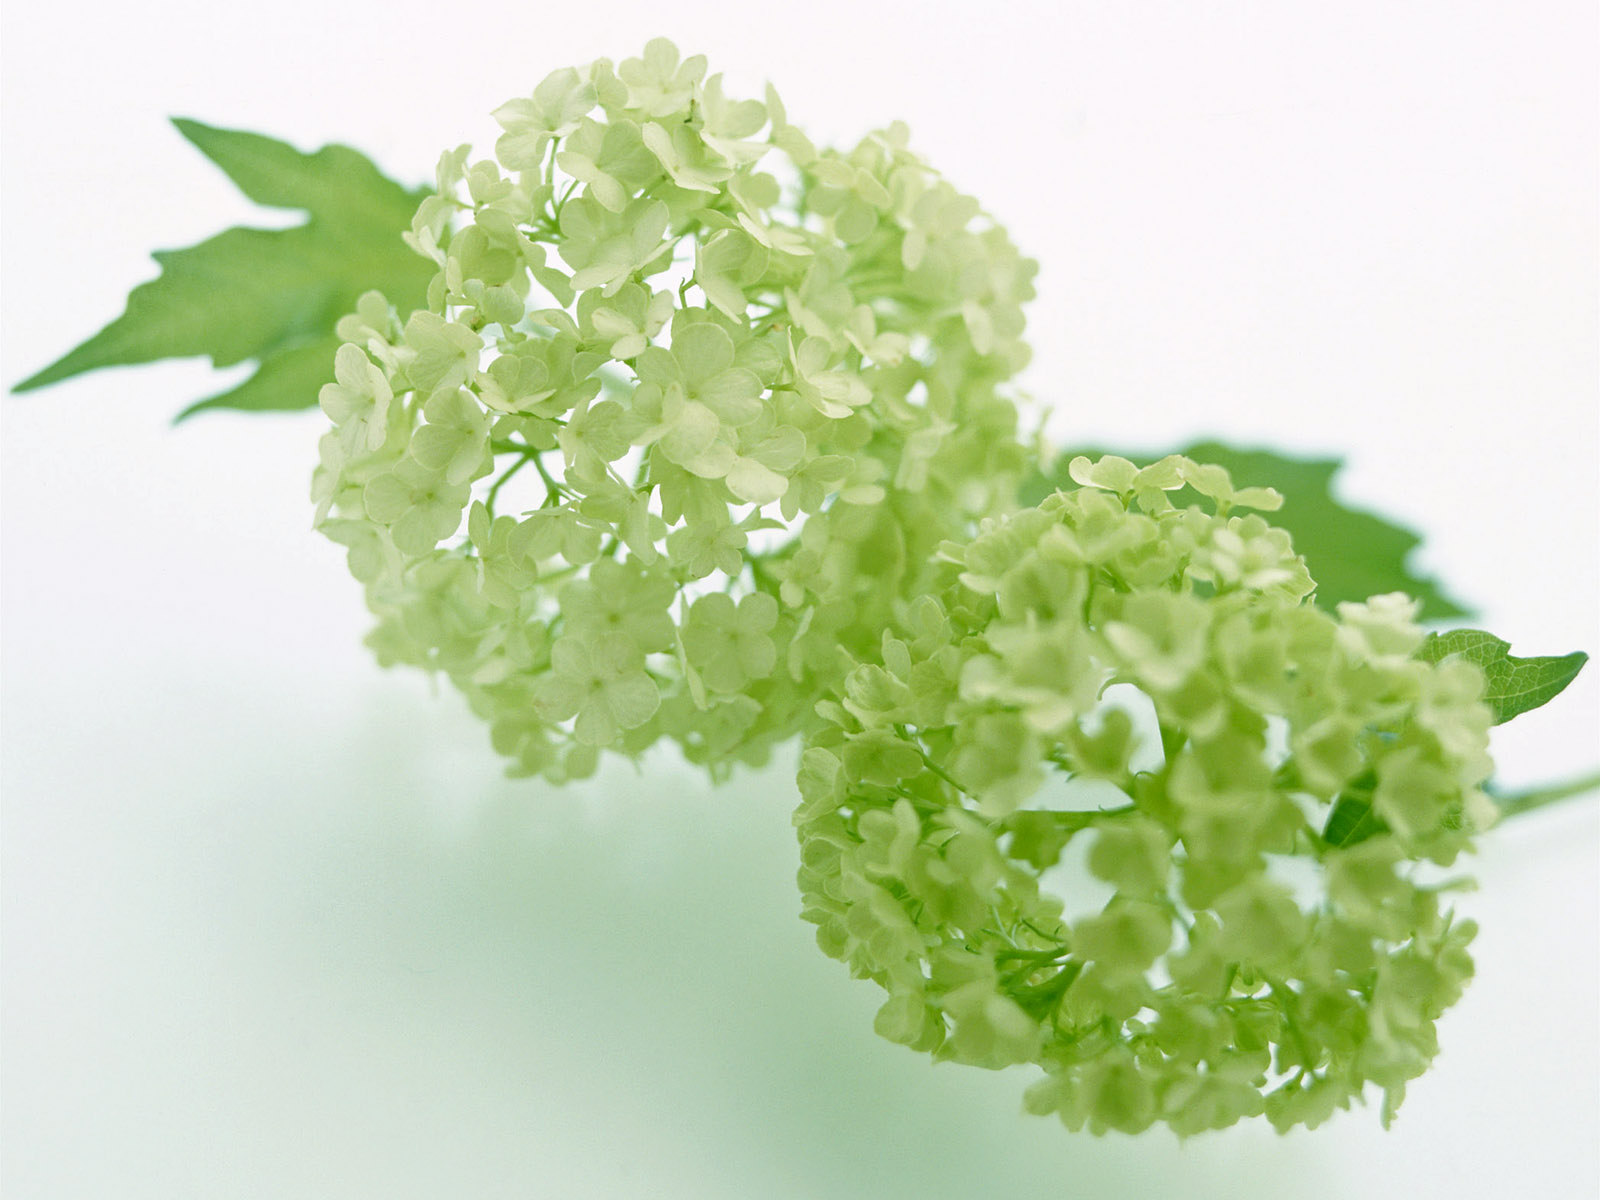 Pictures Of Green Flowers 25 Background Wallpaper